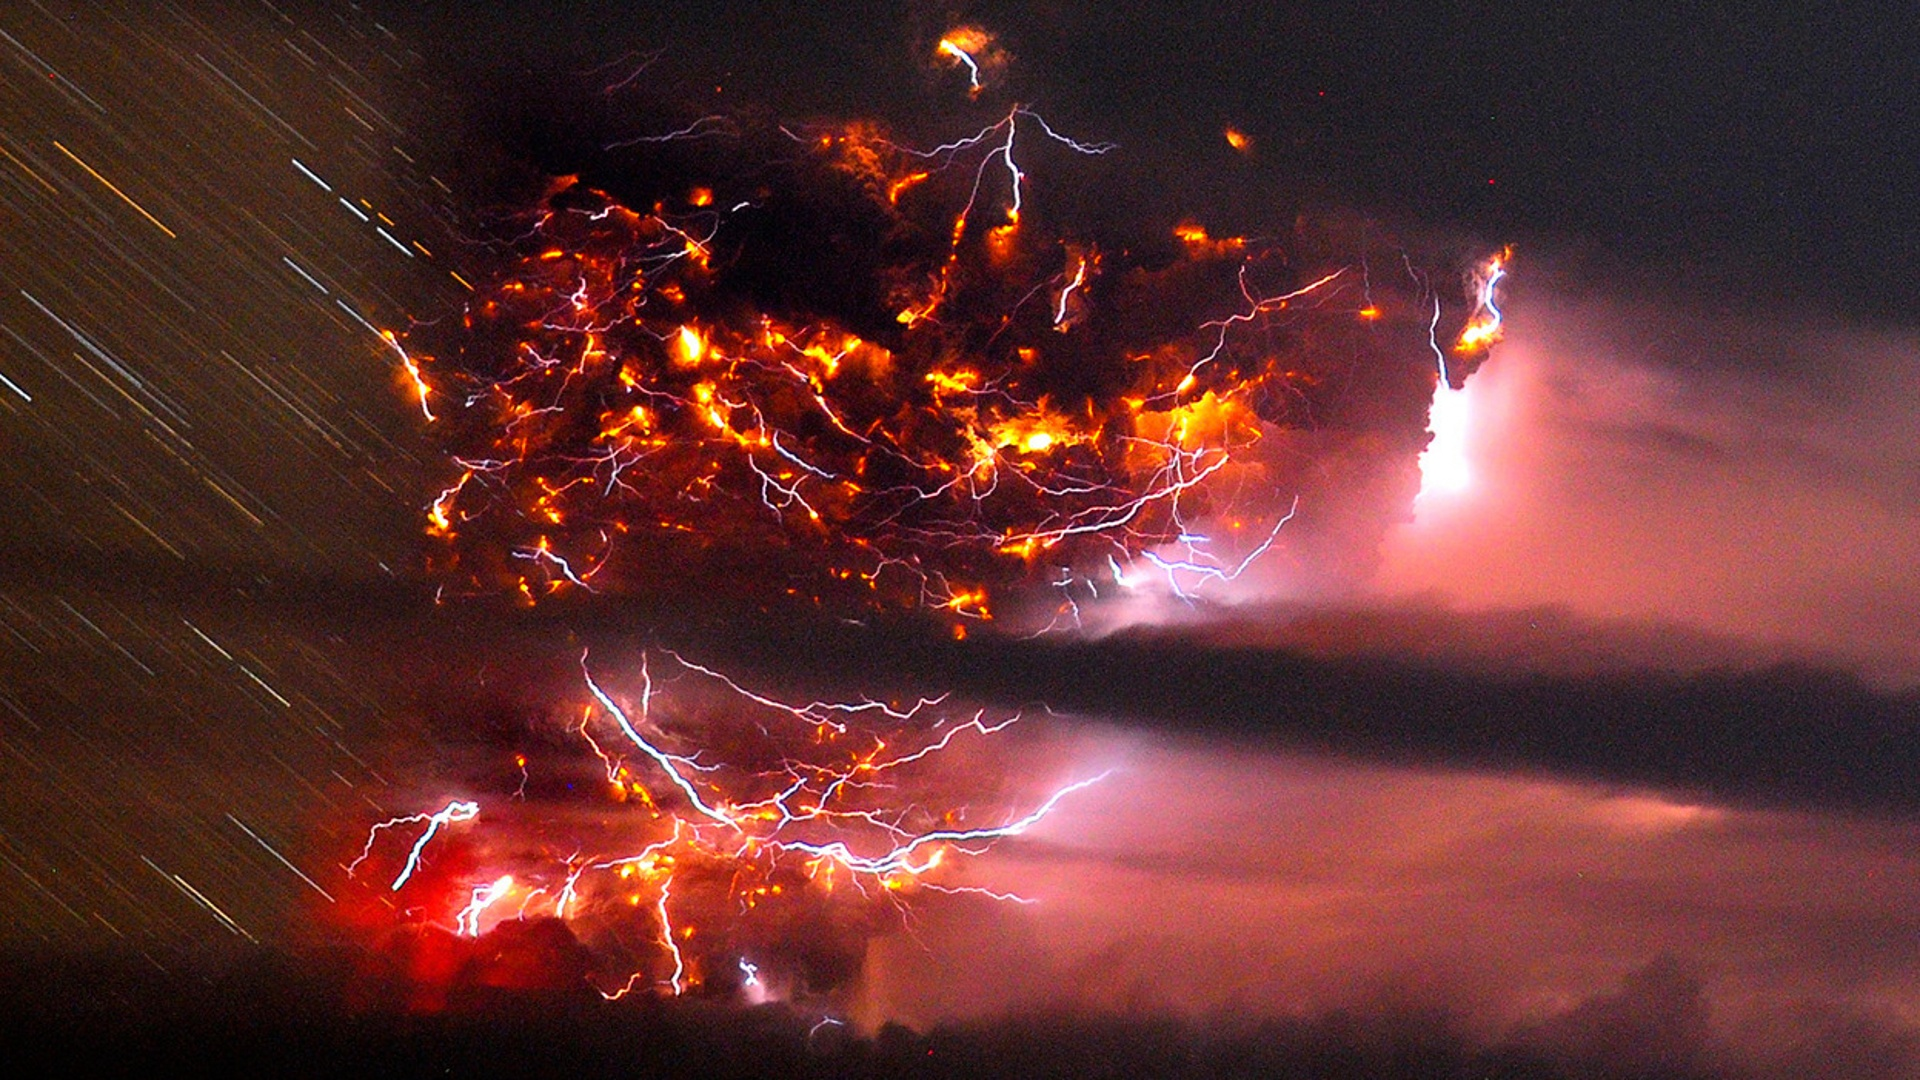 Volcano Wallpapers and Background Images   stmednet 1920x1080